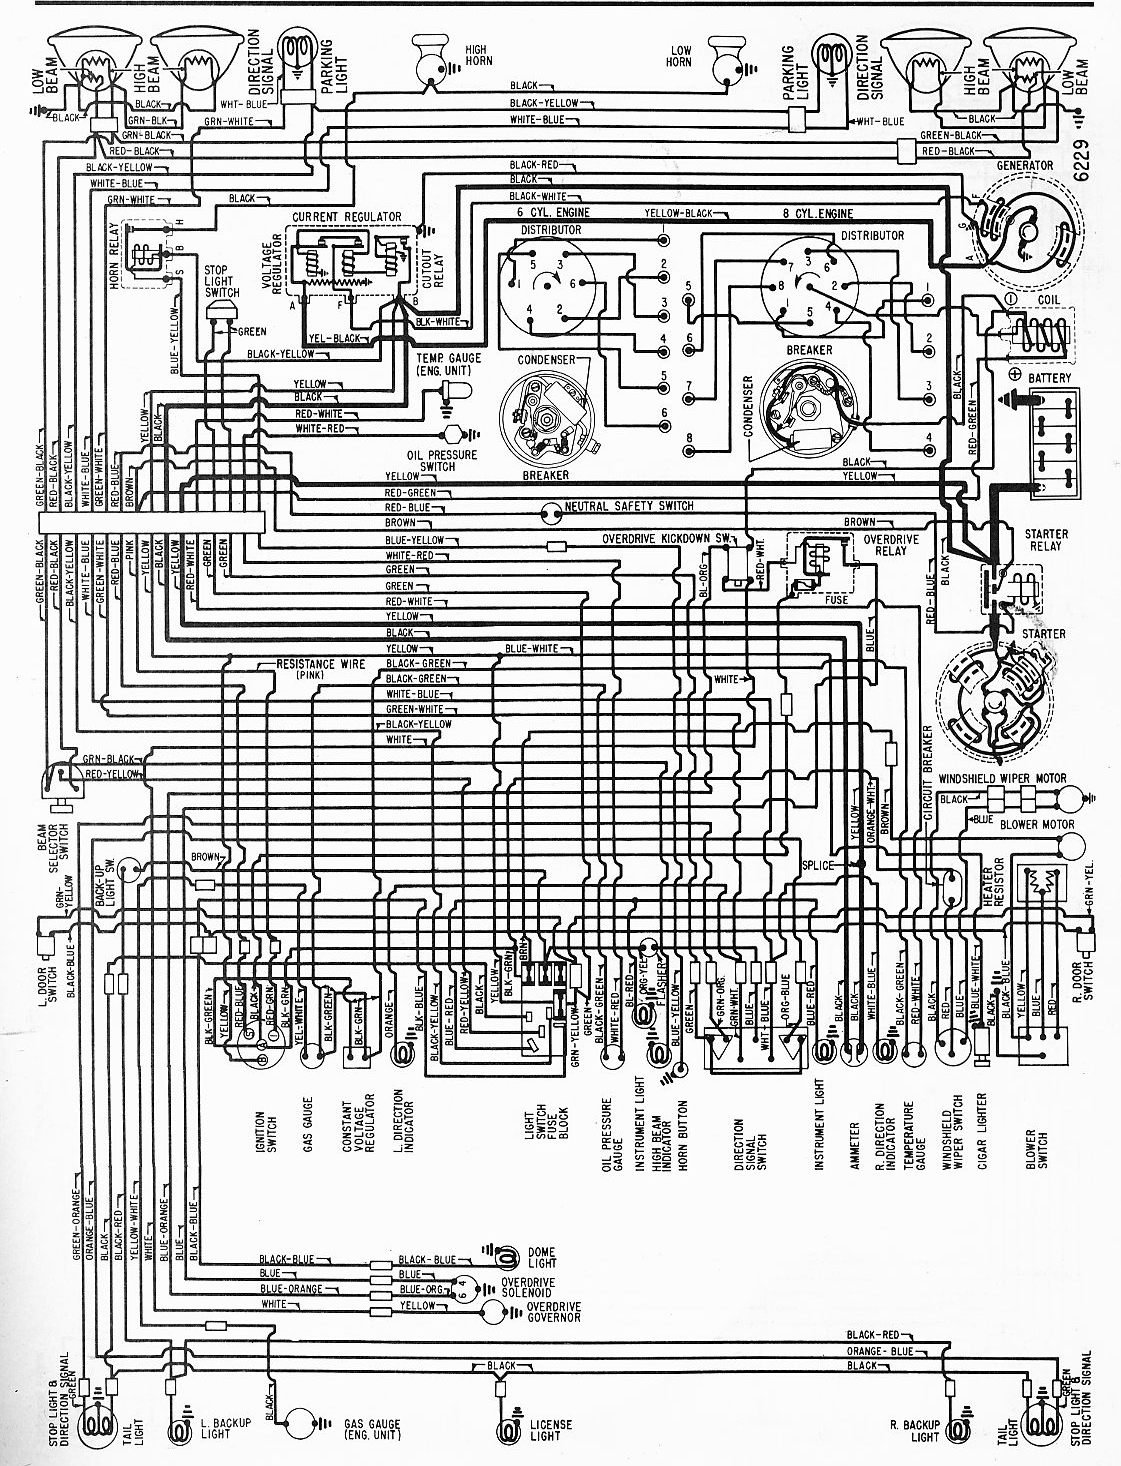 2012 11 08_045222_62_f100_wiring_diagram wiring diagram for 1972 ford f100 the wiring diagram 1971 ford f250 wiring diagram at bayanpartner.co